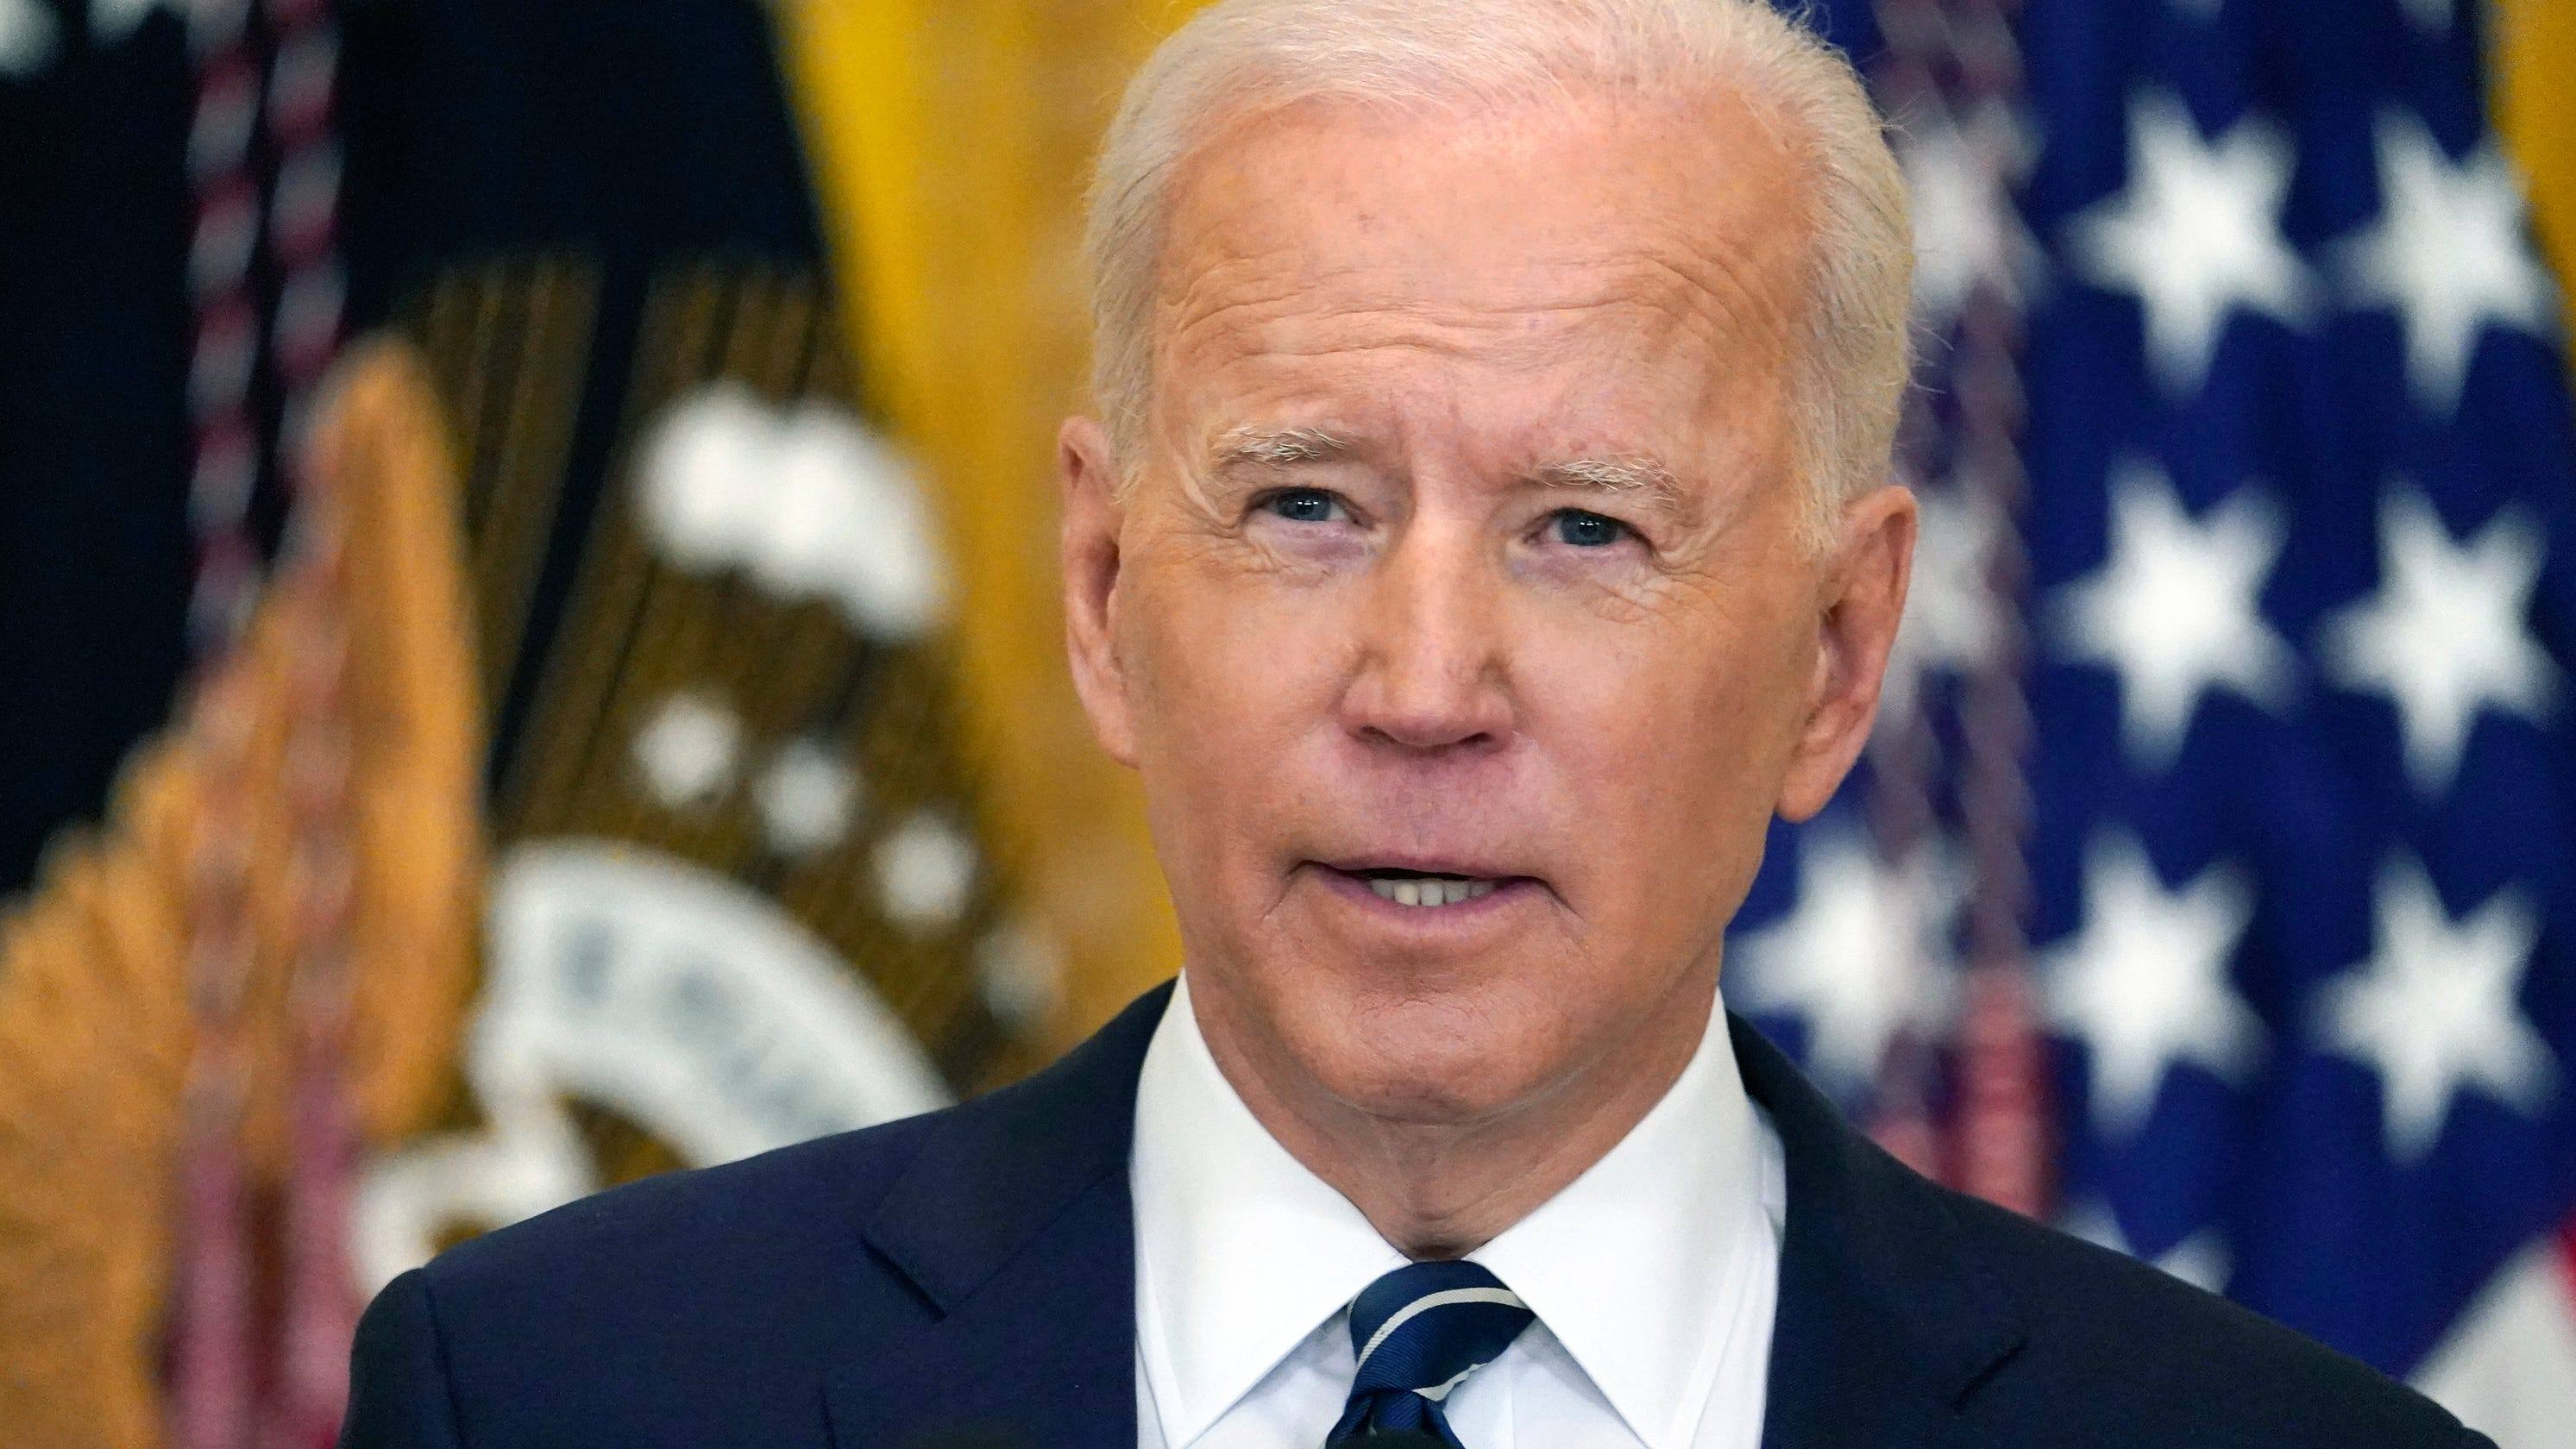 Biden to propose $2 trillion infrastructure jobs plan funded by corporate tax hike – USA TODAY